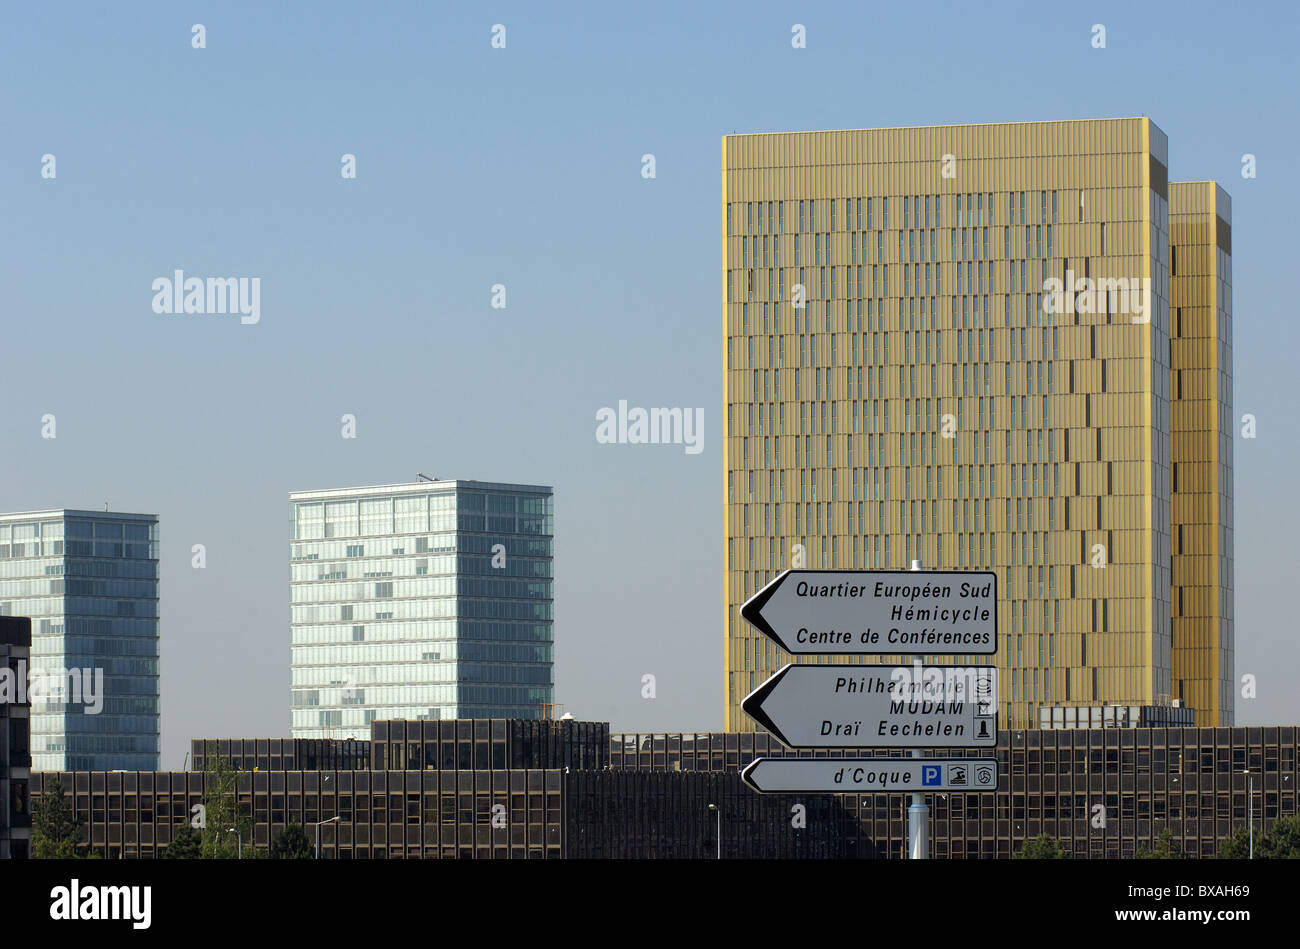 The ensemble of buildings of the EU on the Kirchberg Plateau in Luxembourg - Stock Image